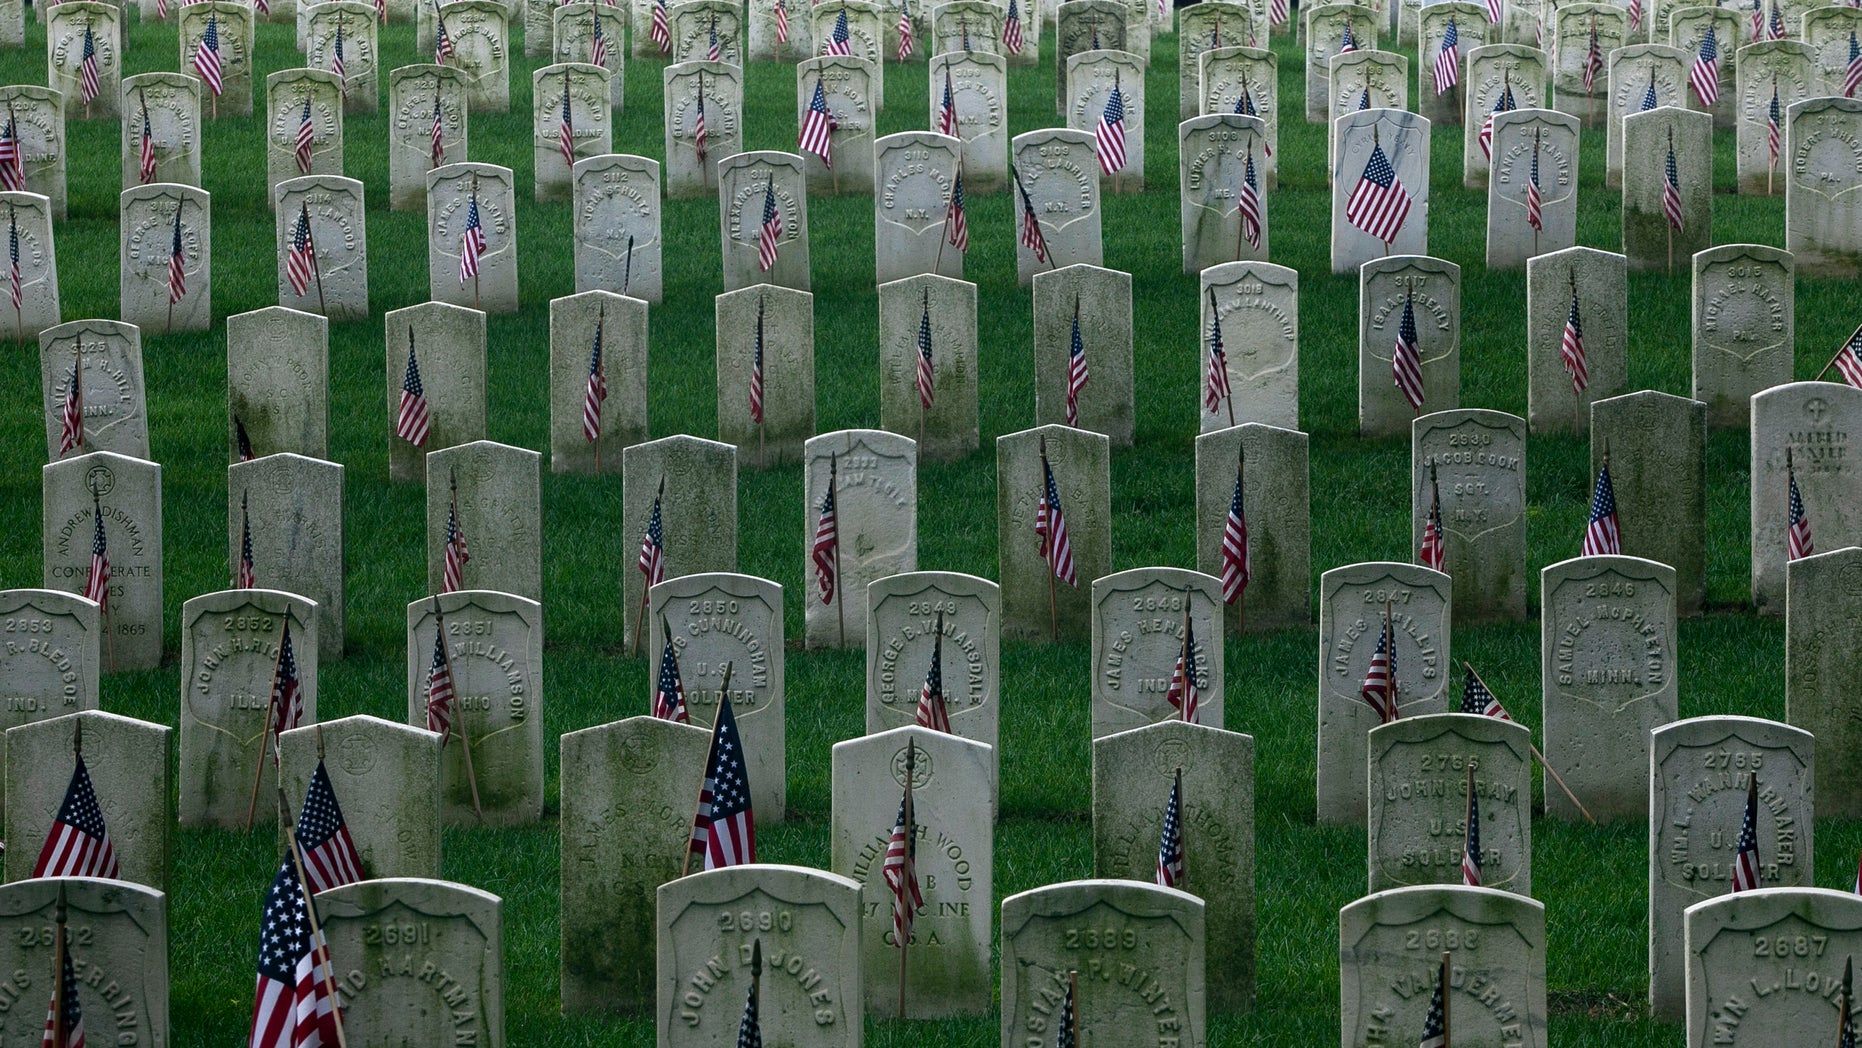 U.S. flags are placed on gravestones of military veterans at the Cyprus Hills National Cemetery in New York May 27, 2012. REUTERS/Allison Joyce (UNITED STATES - Tags: MILITARY SOCIETY CONFLICT) - RTR32Q65